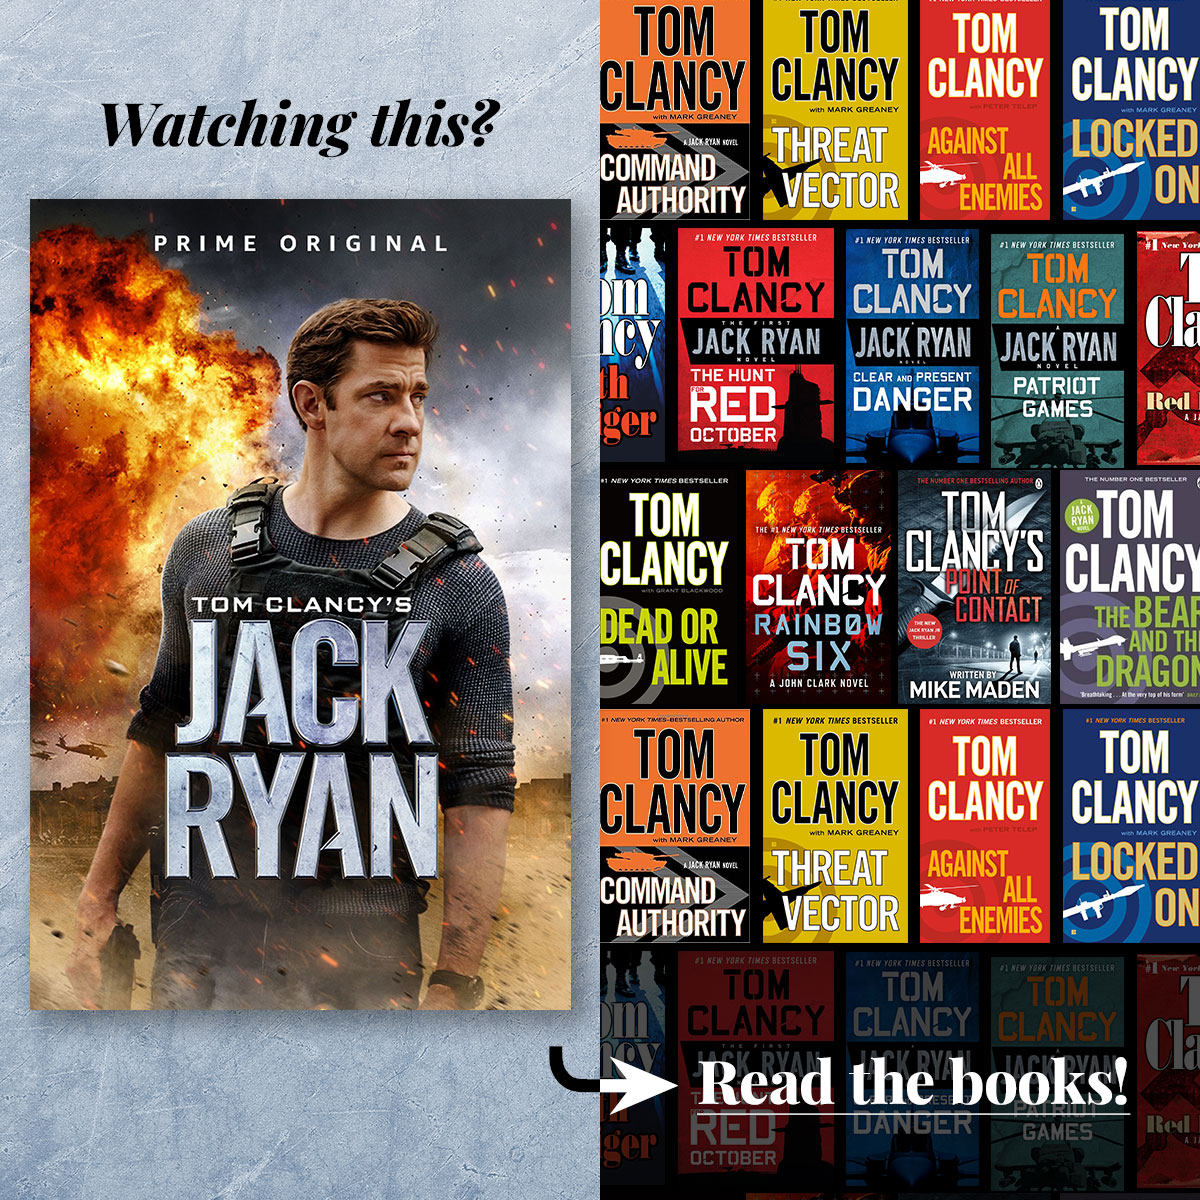 Tom Clancy's Jack Ryan • Streaming on Amazon Prime